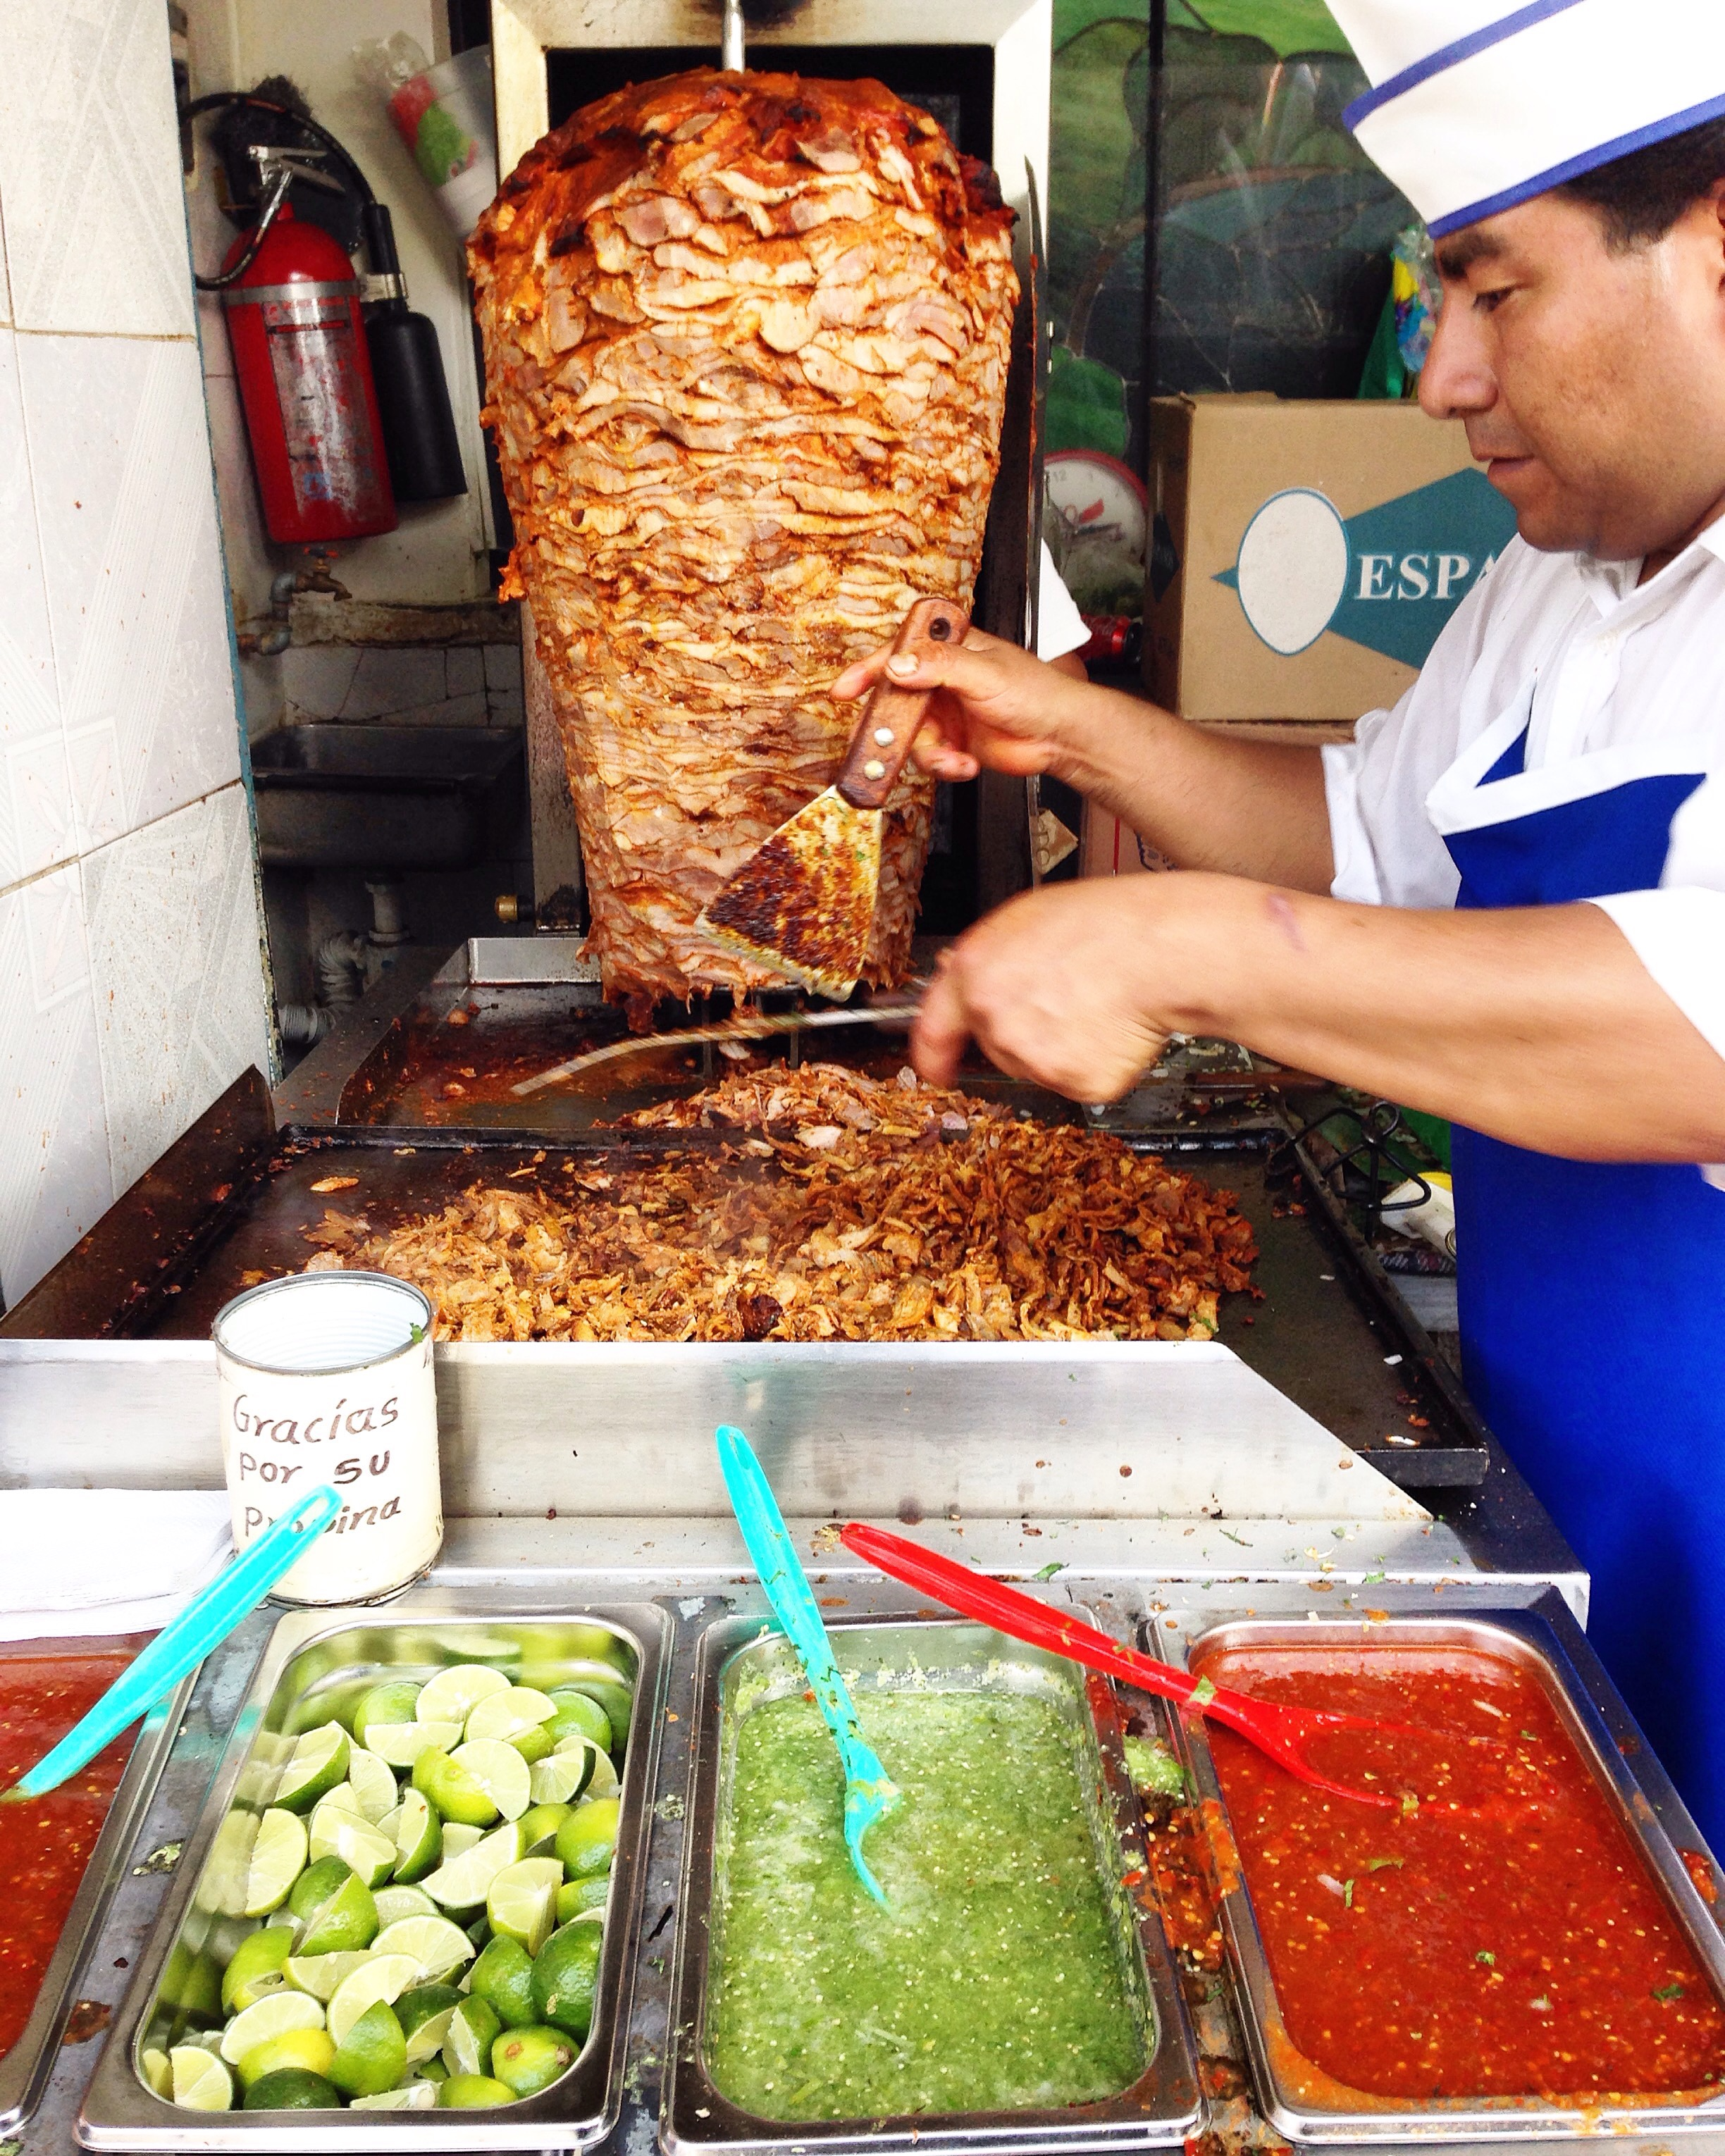 Cool Places To Eat In La: The Five Best Places To Eat In Mexico City